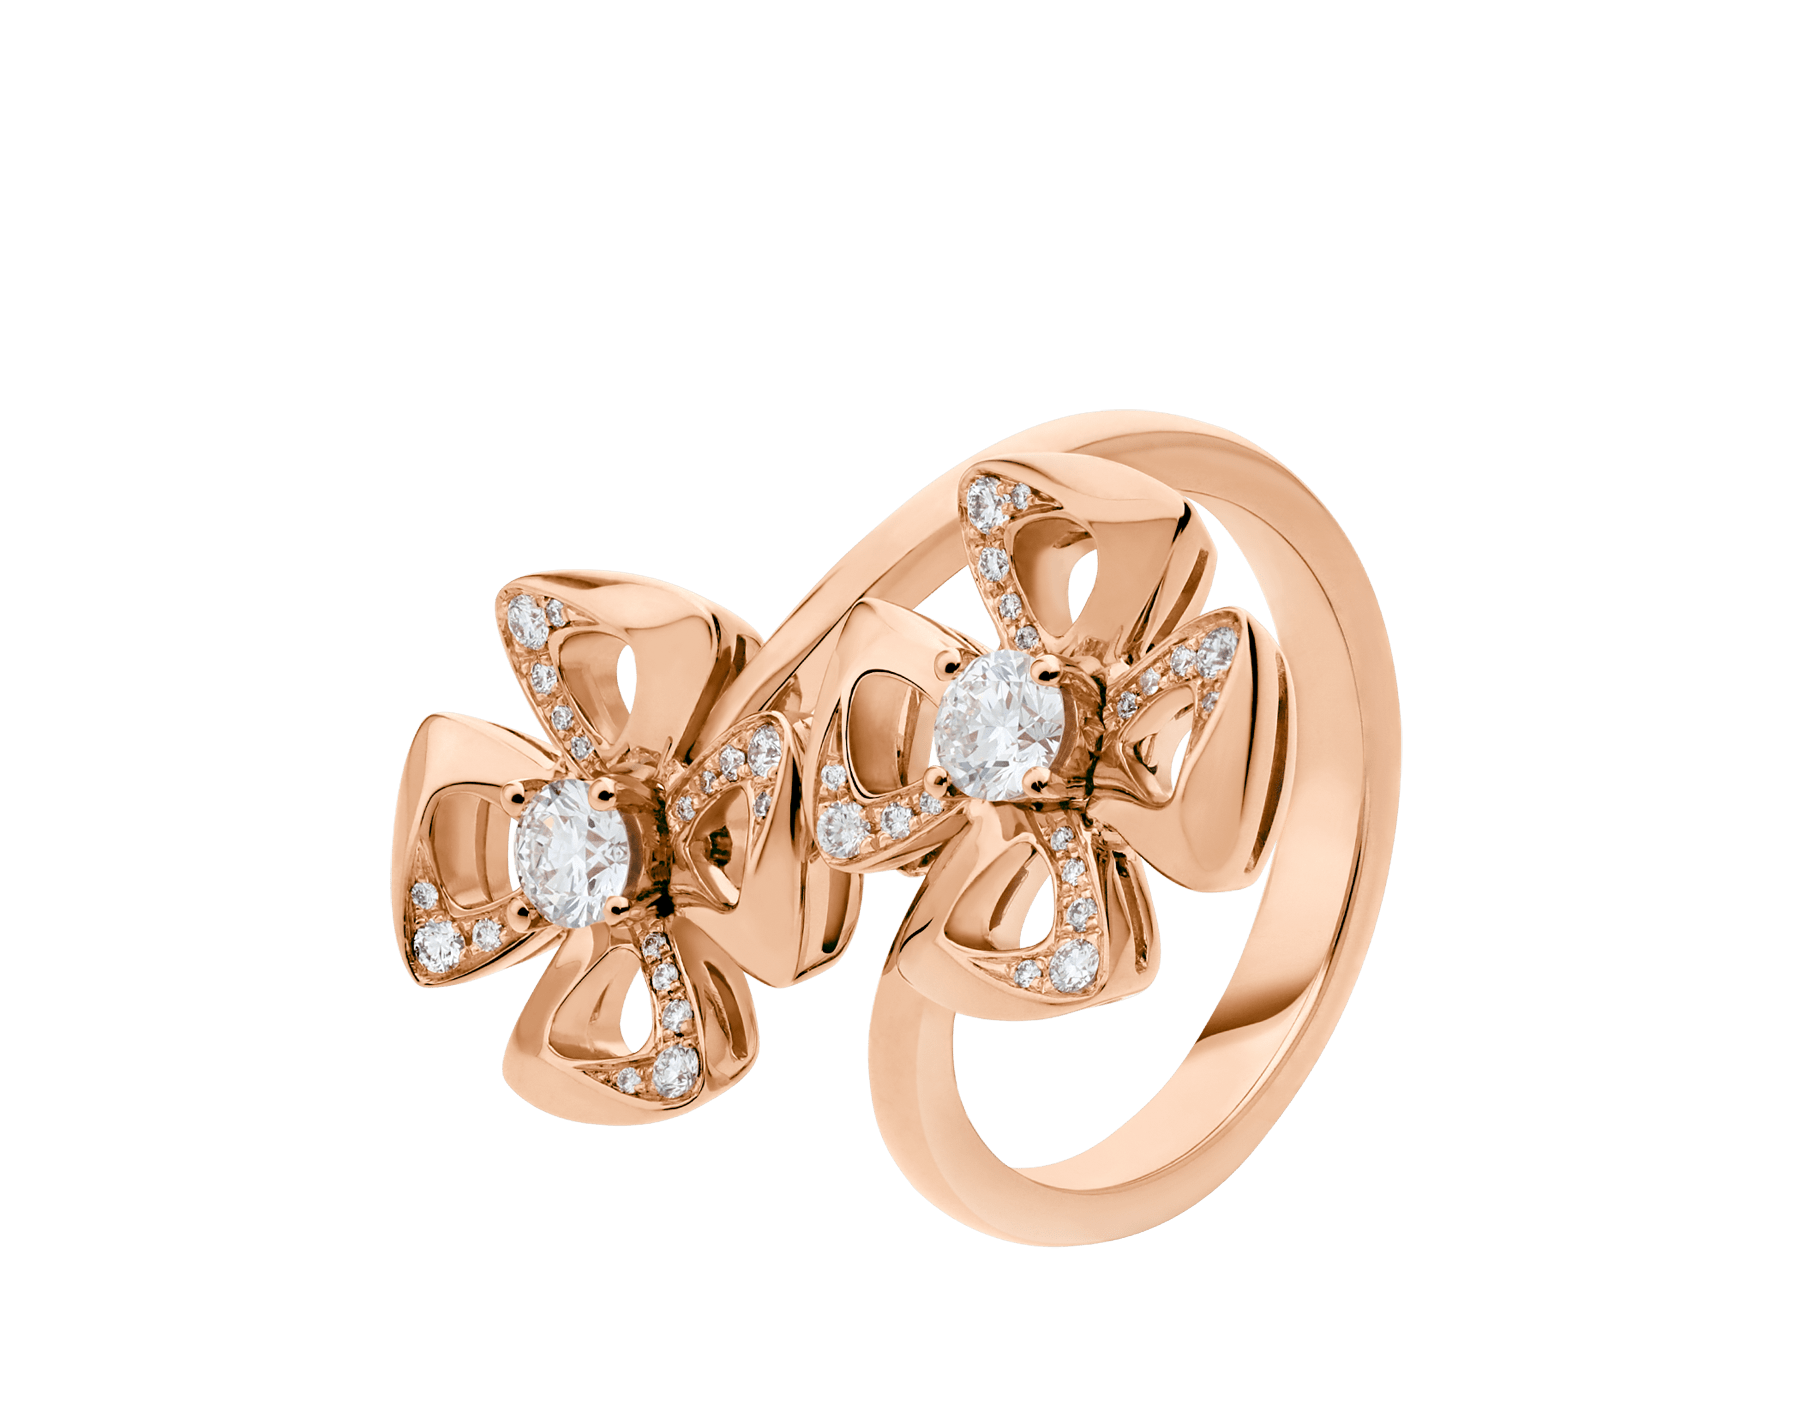 Fiorever 18 kt rose gold ring set with two round brilliant-cut diamonds and pavé diamonds. AN858753 image 1